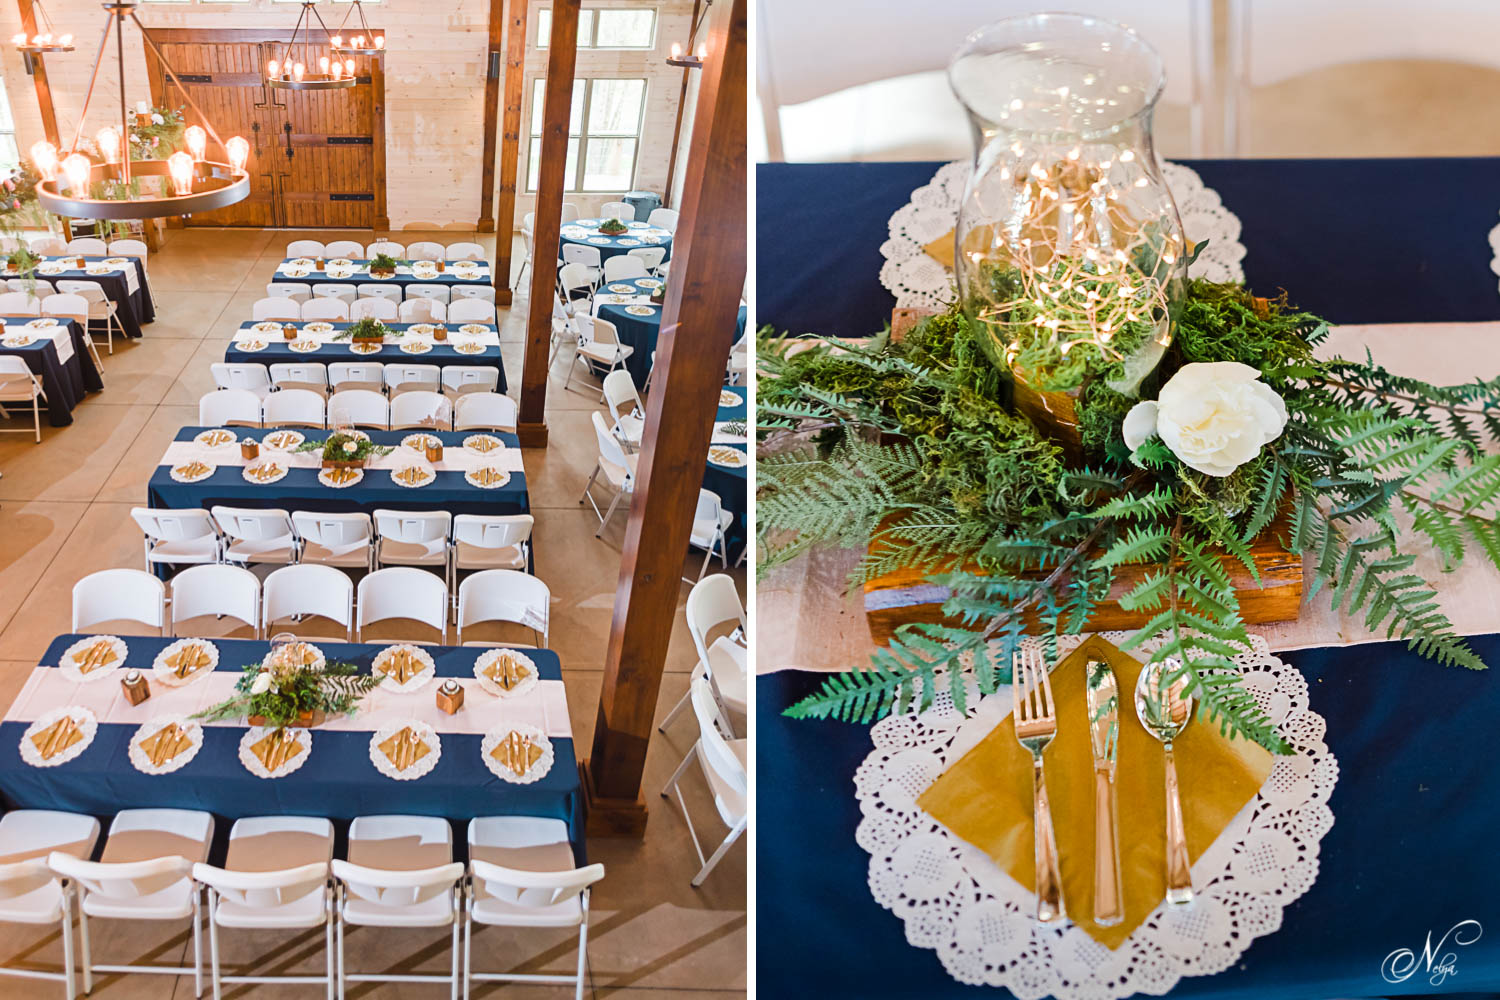 redding reception in navy, greenery and gold at Hiwassee River weddings near Chattanooga TN